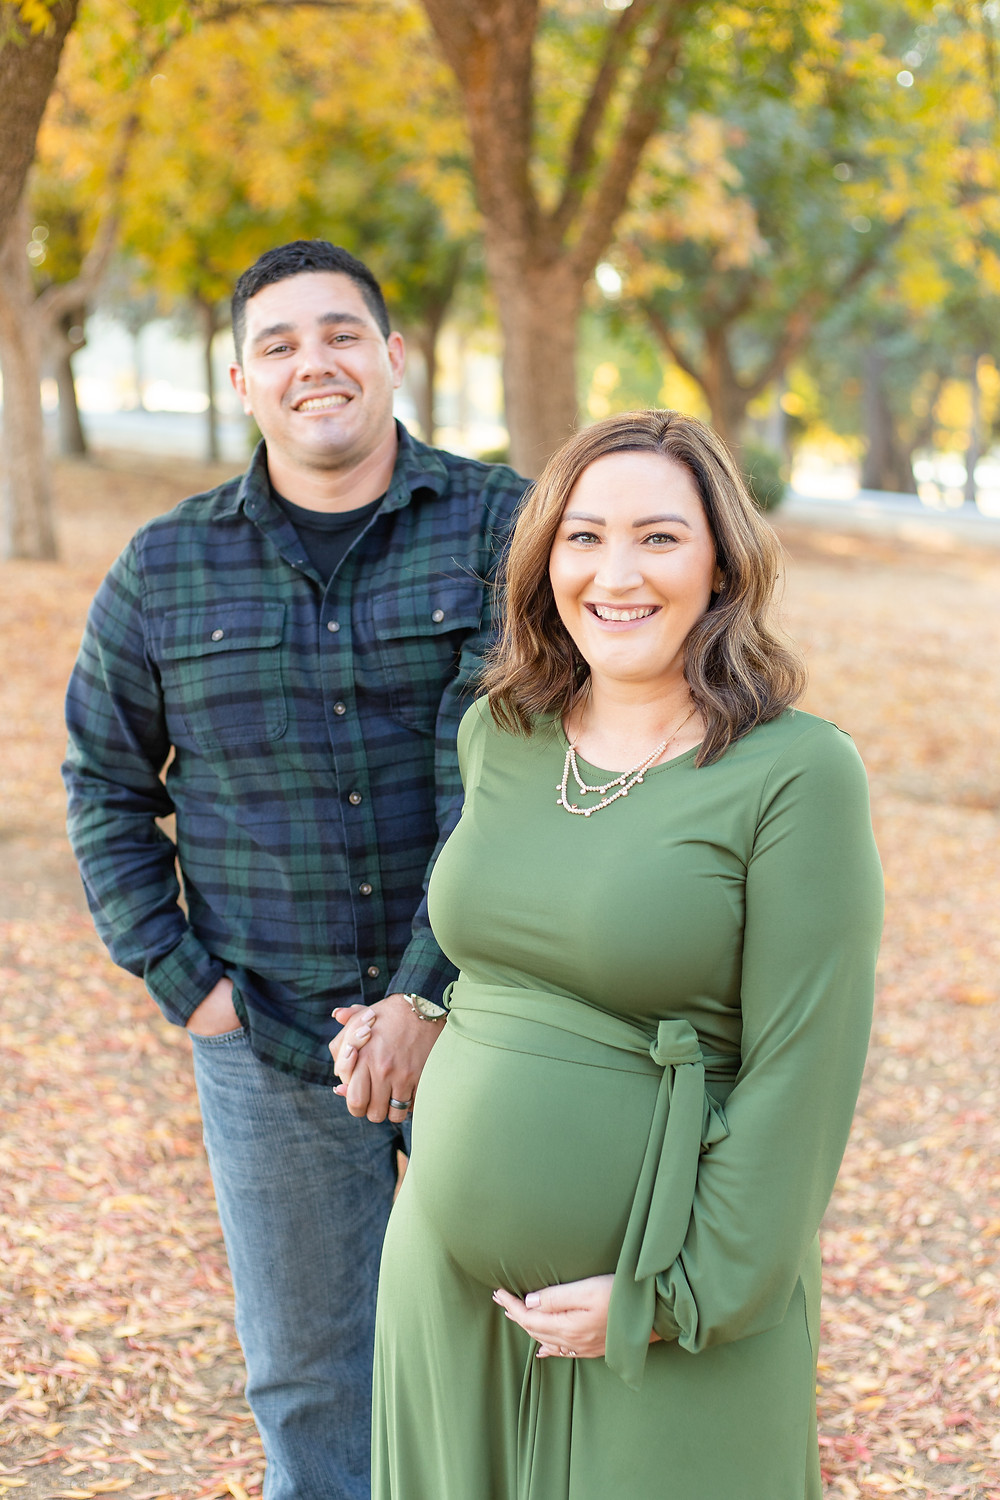 A maternity lifestyle session in Fresno, CA by Ashley Norton Photography.